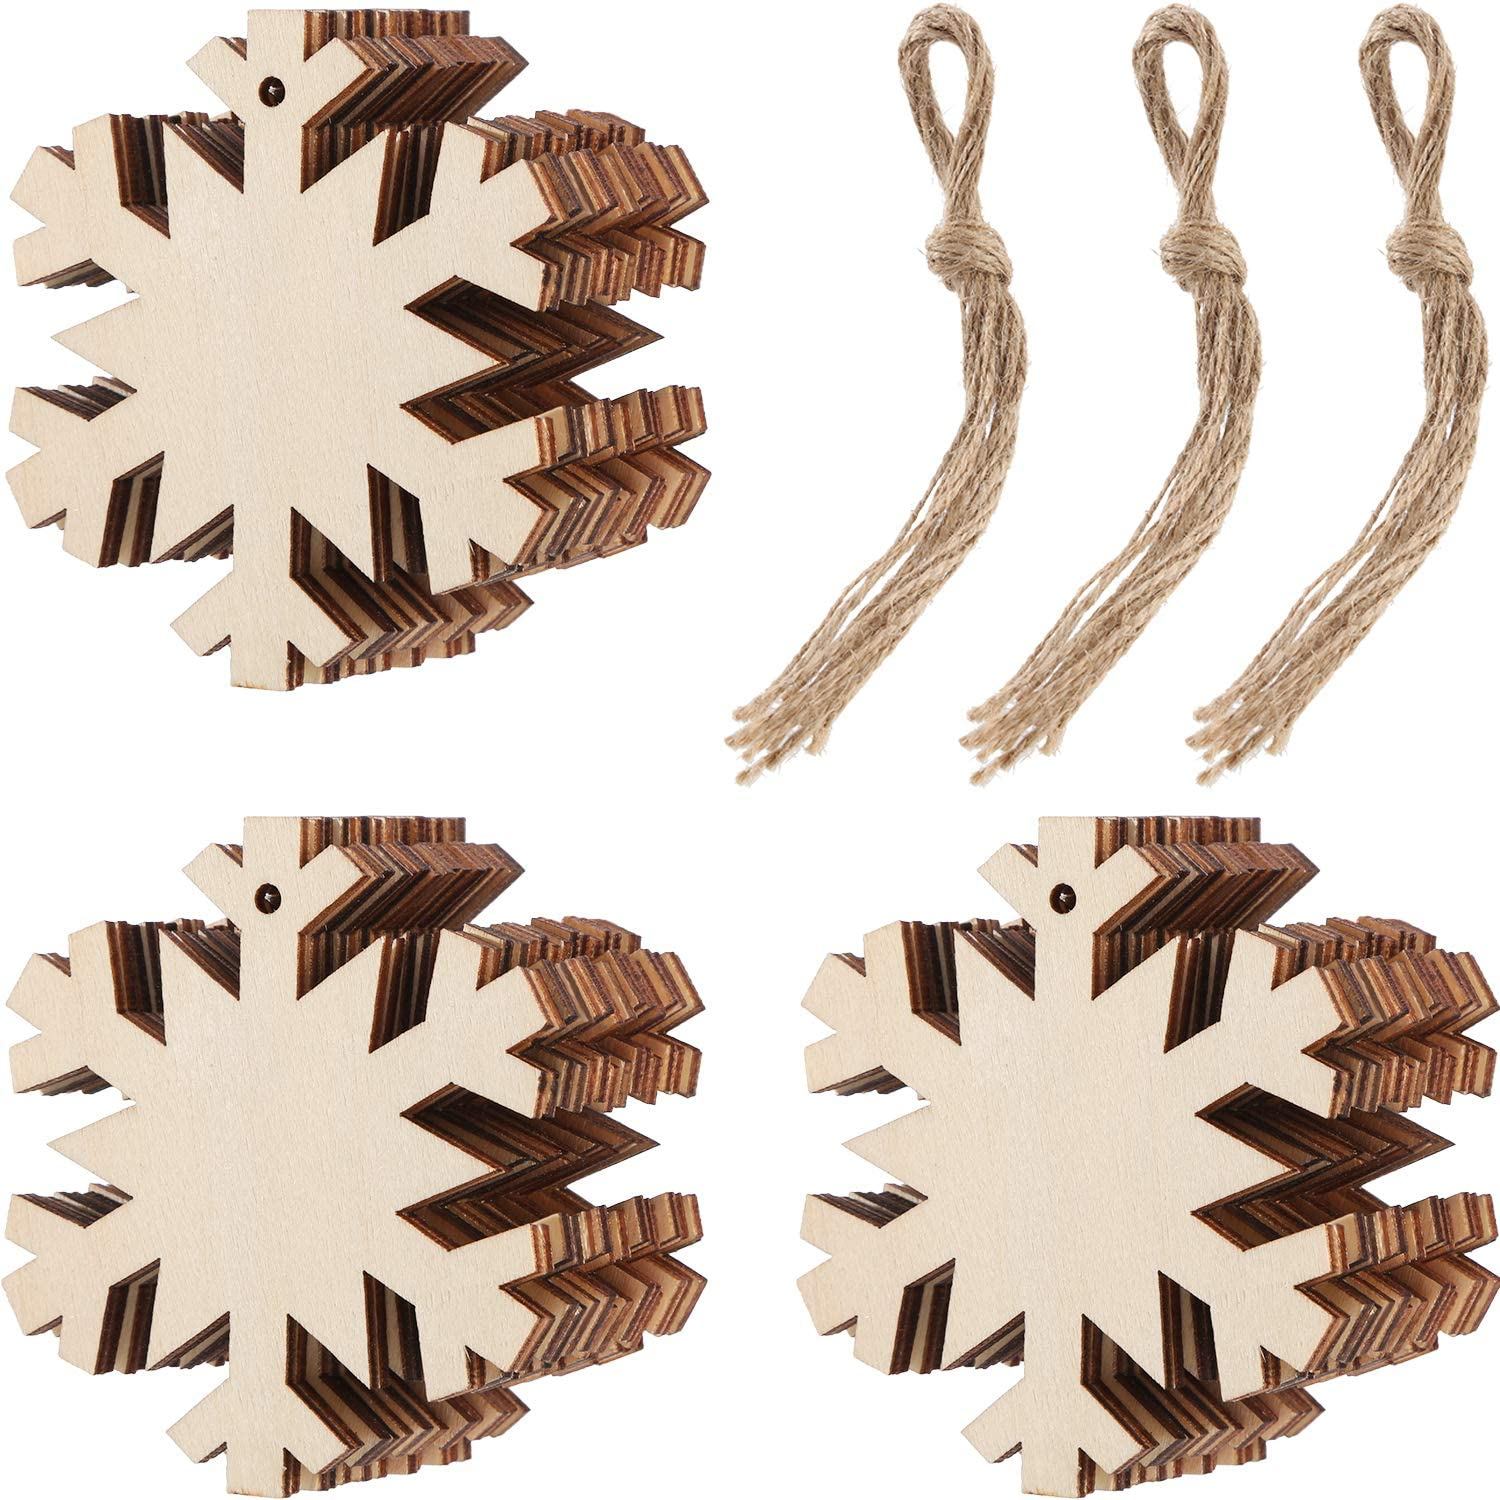 Tatuo 30 Pieces Wooden Snowflake Cutouts Christmas Wood Snowflake Decorations with 30 Pieces Twine Ropes for Kids Crafts Christmas Ornaments